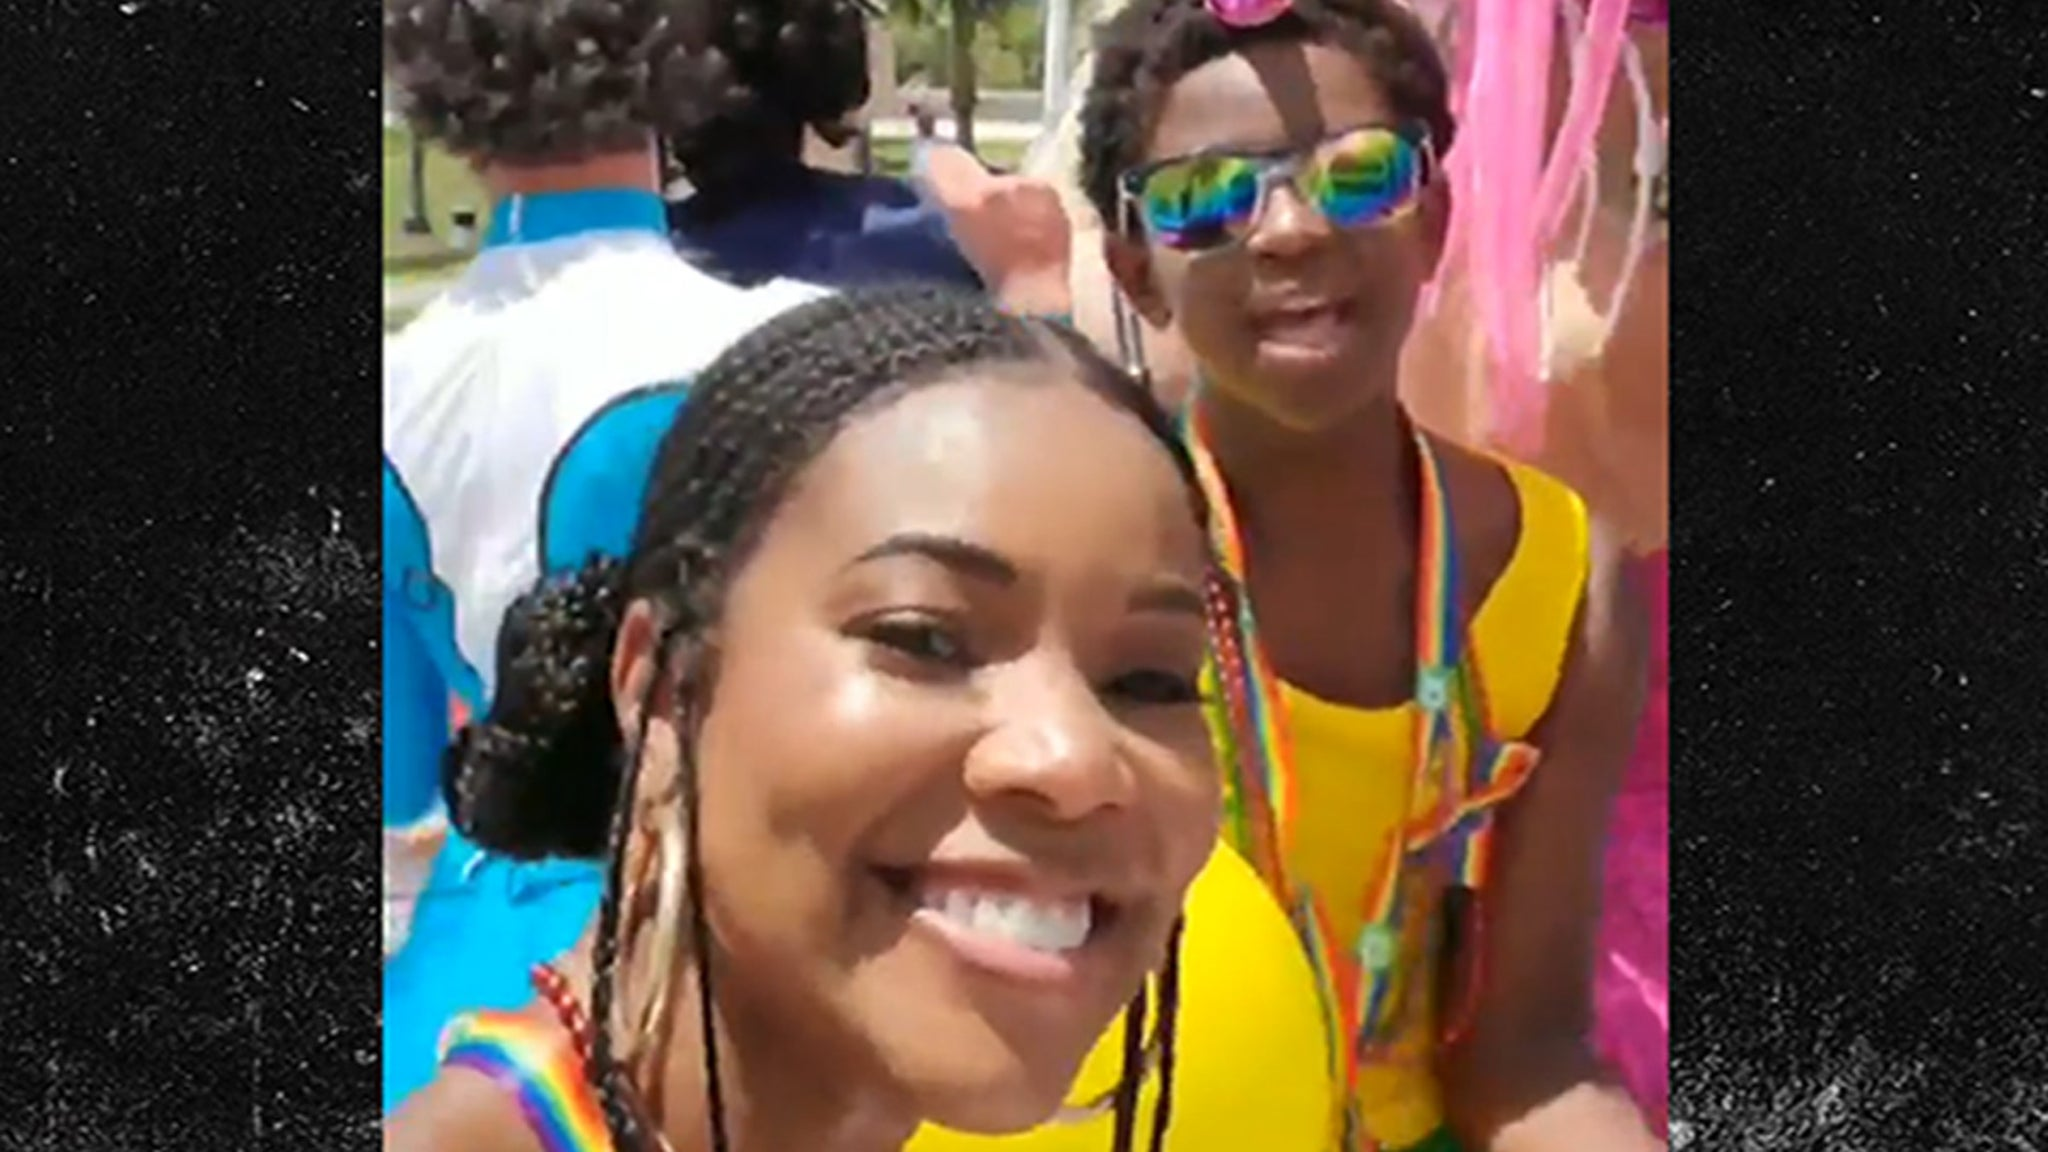 Dwyane Wade and Gabrielle Union Support 11-Year-Old Son at Gay Pride